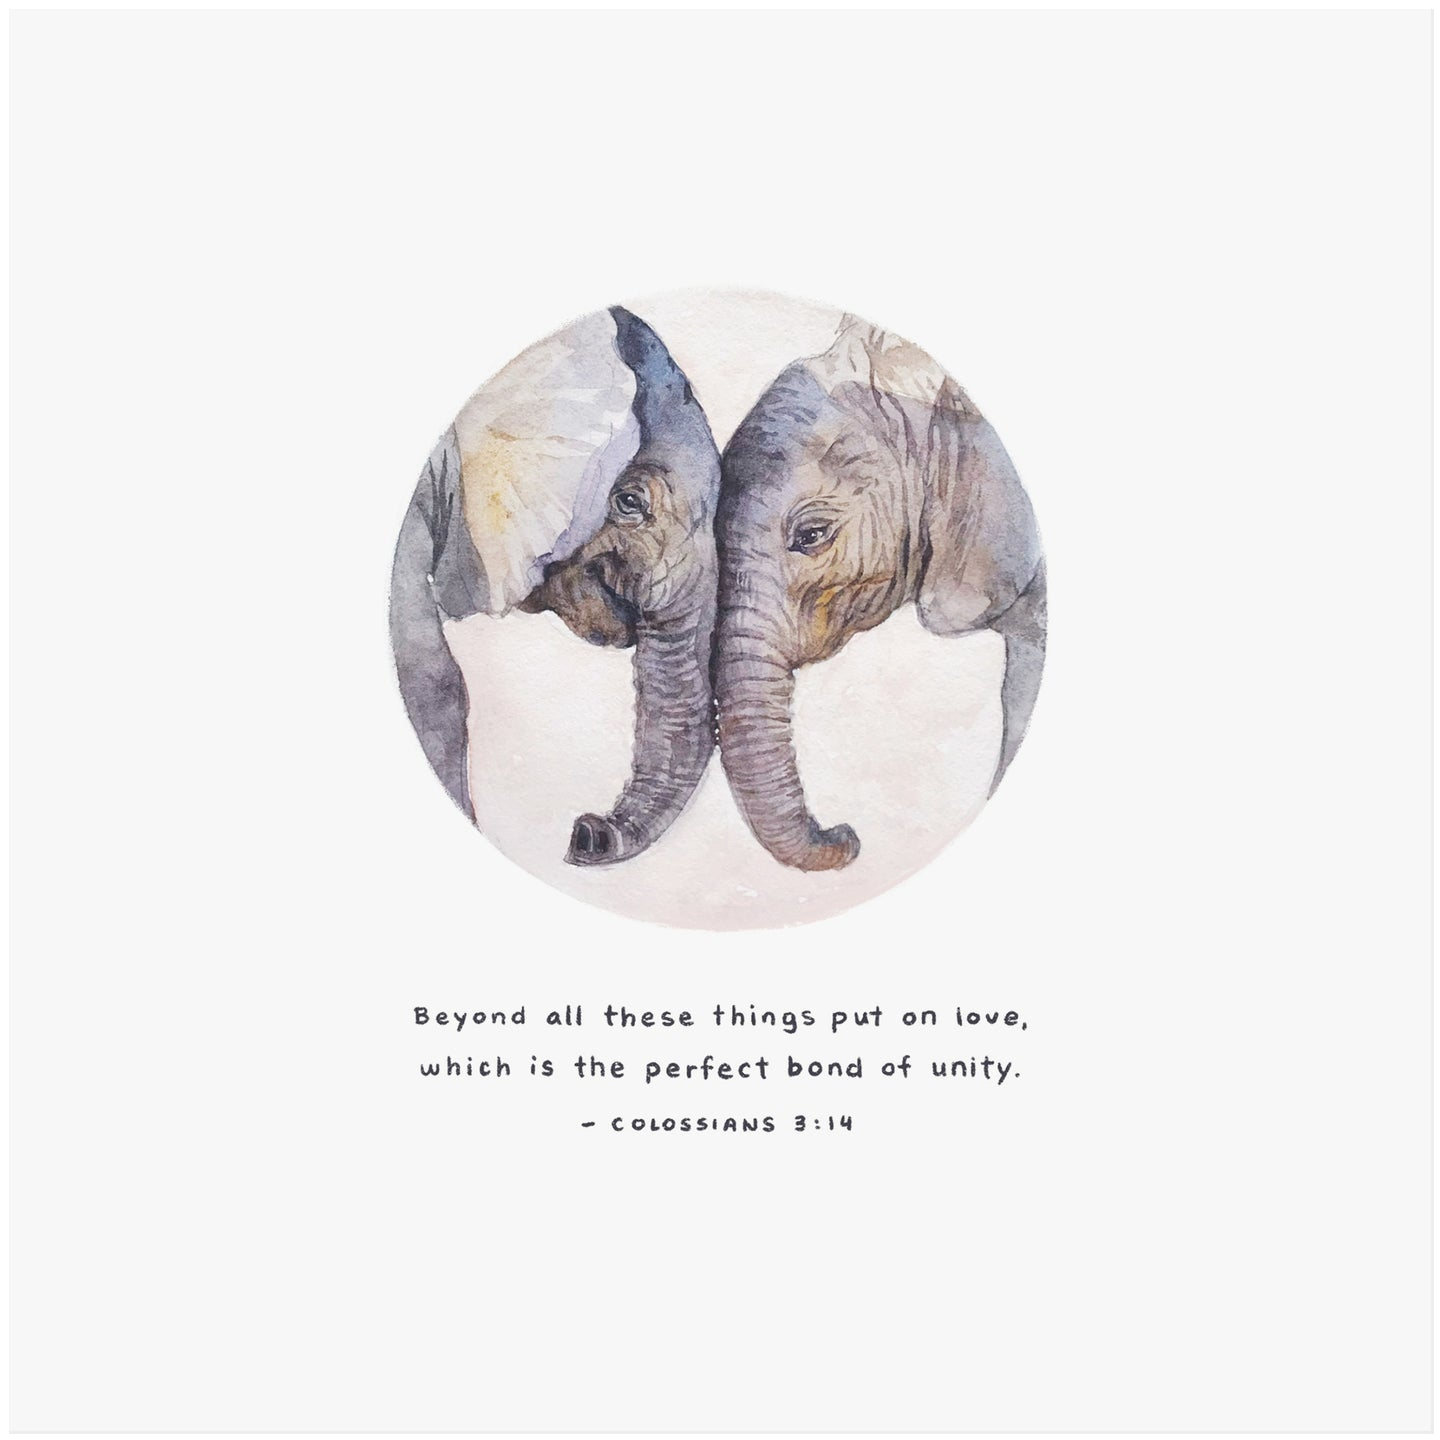 Colossians 3:14 Artwork of two elephants -